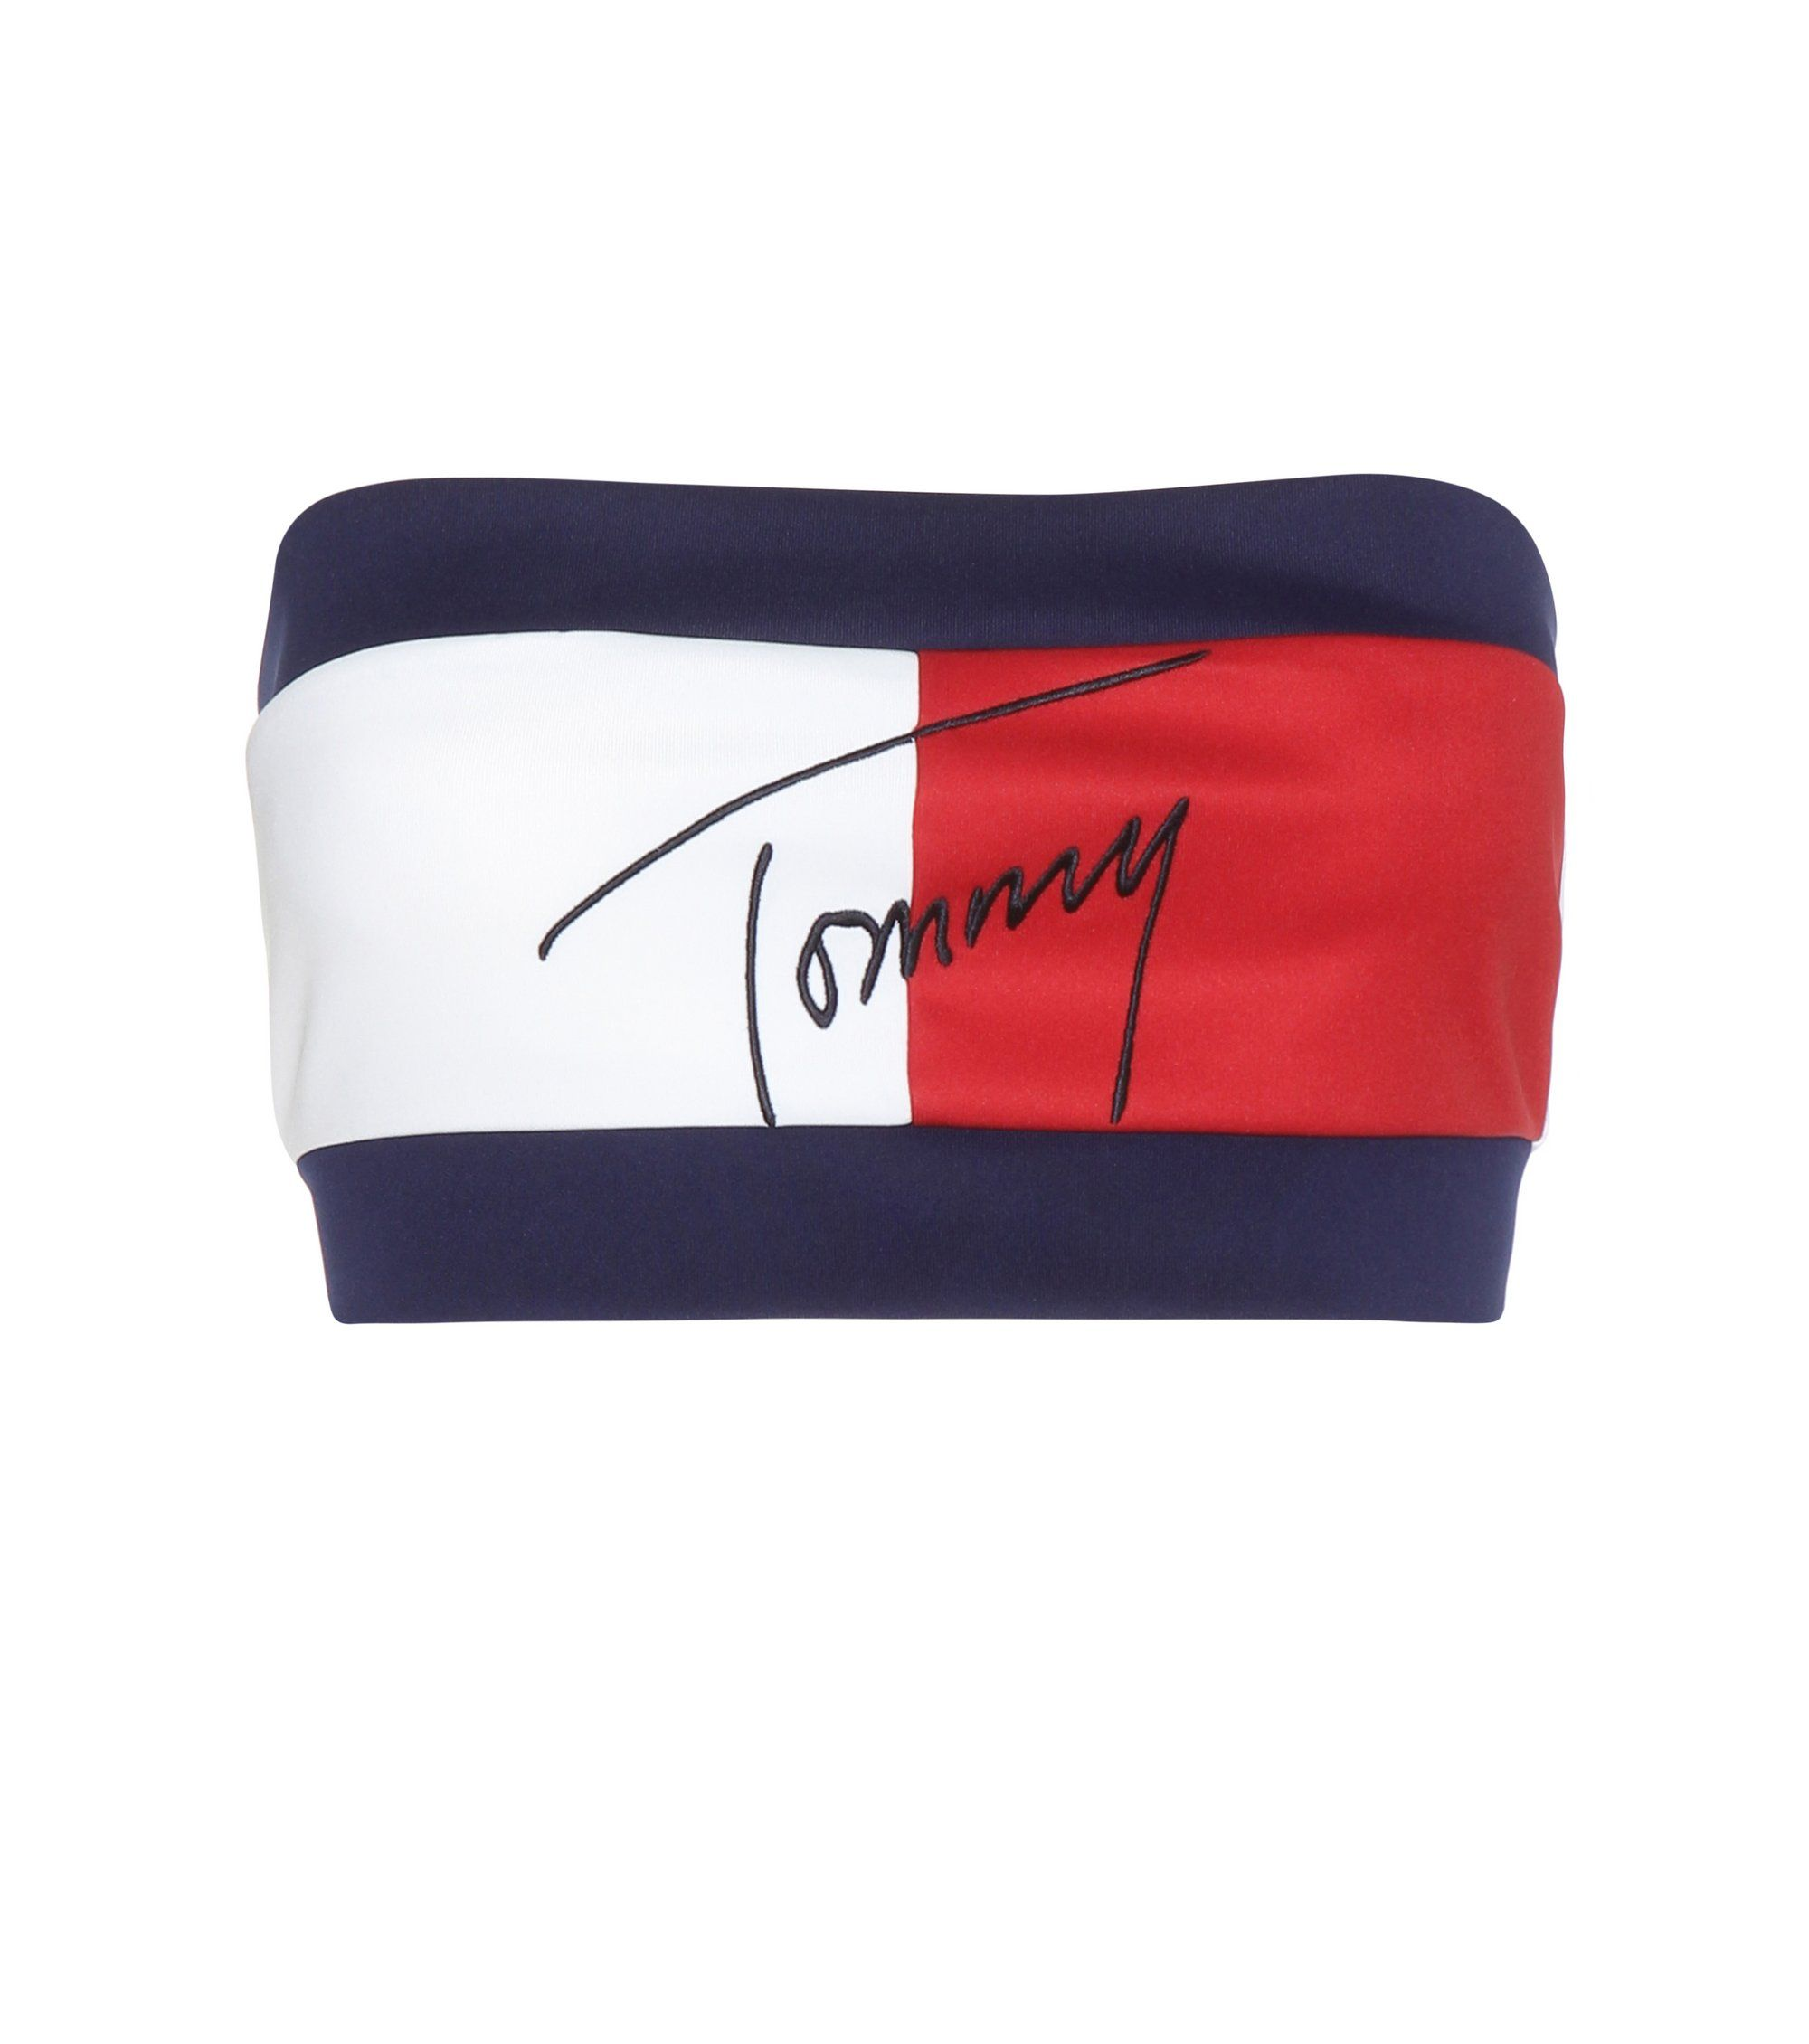 12c42696384 Tommy Hilfiger Throws Back to Fashion s Favorite Era With a New ...